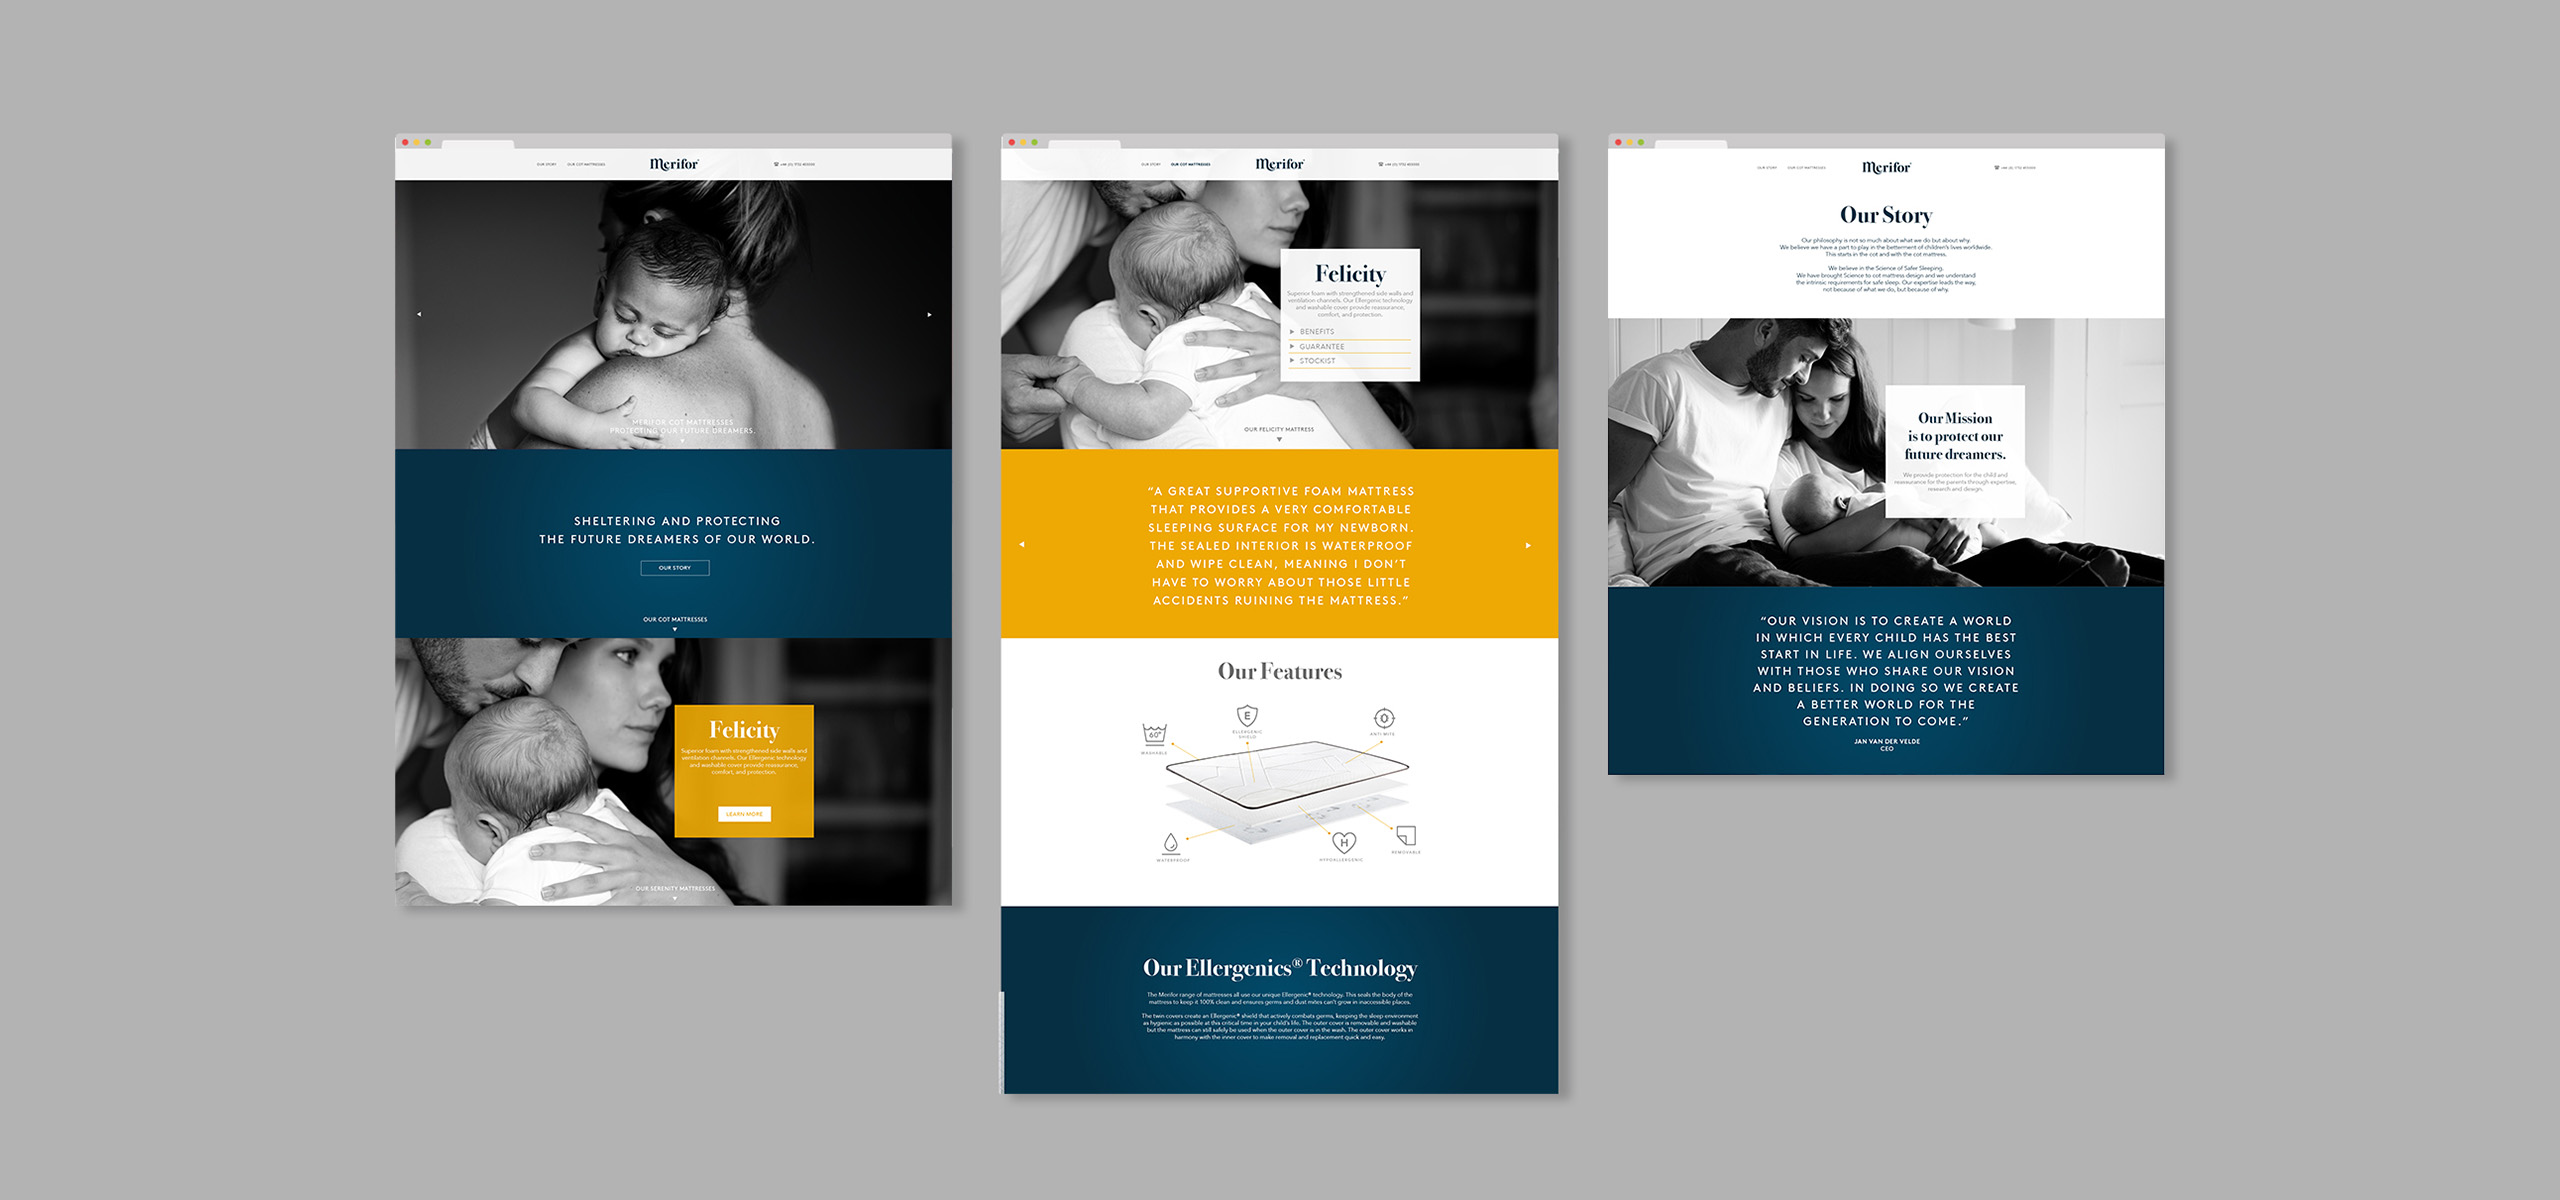 Website design for mattress startup brand Merifor, art directed by White Bear Studio